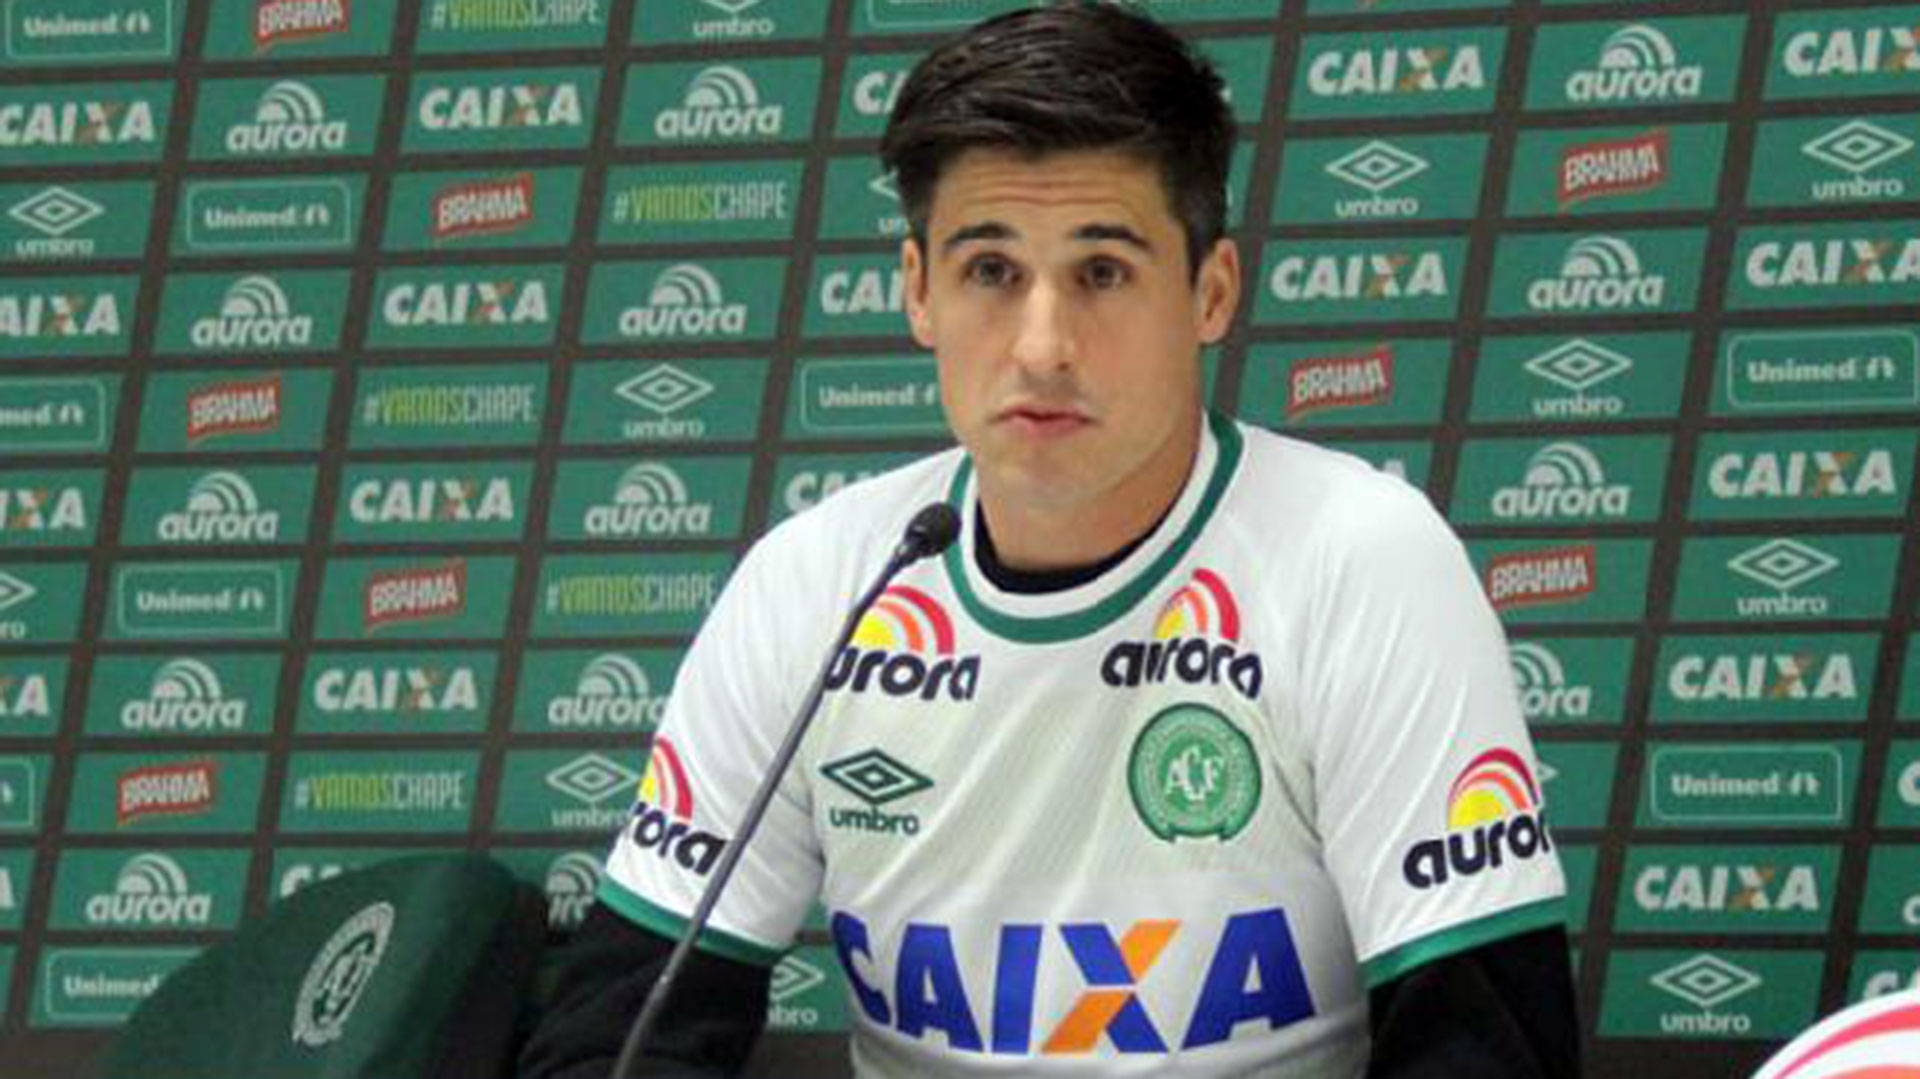 Filipe Machado, defensor